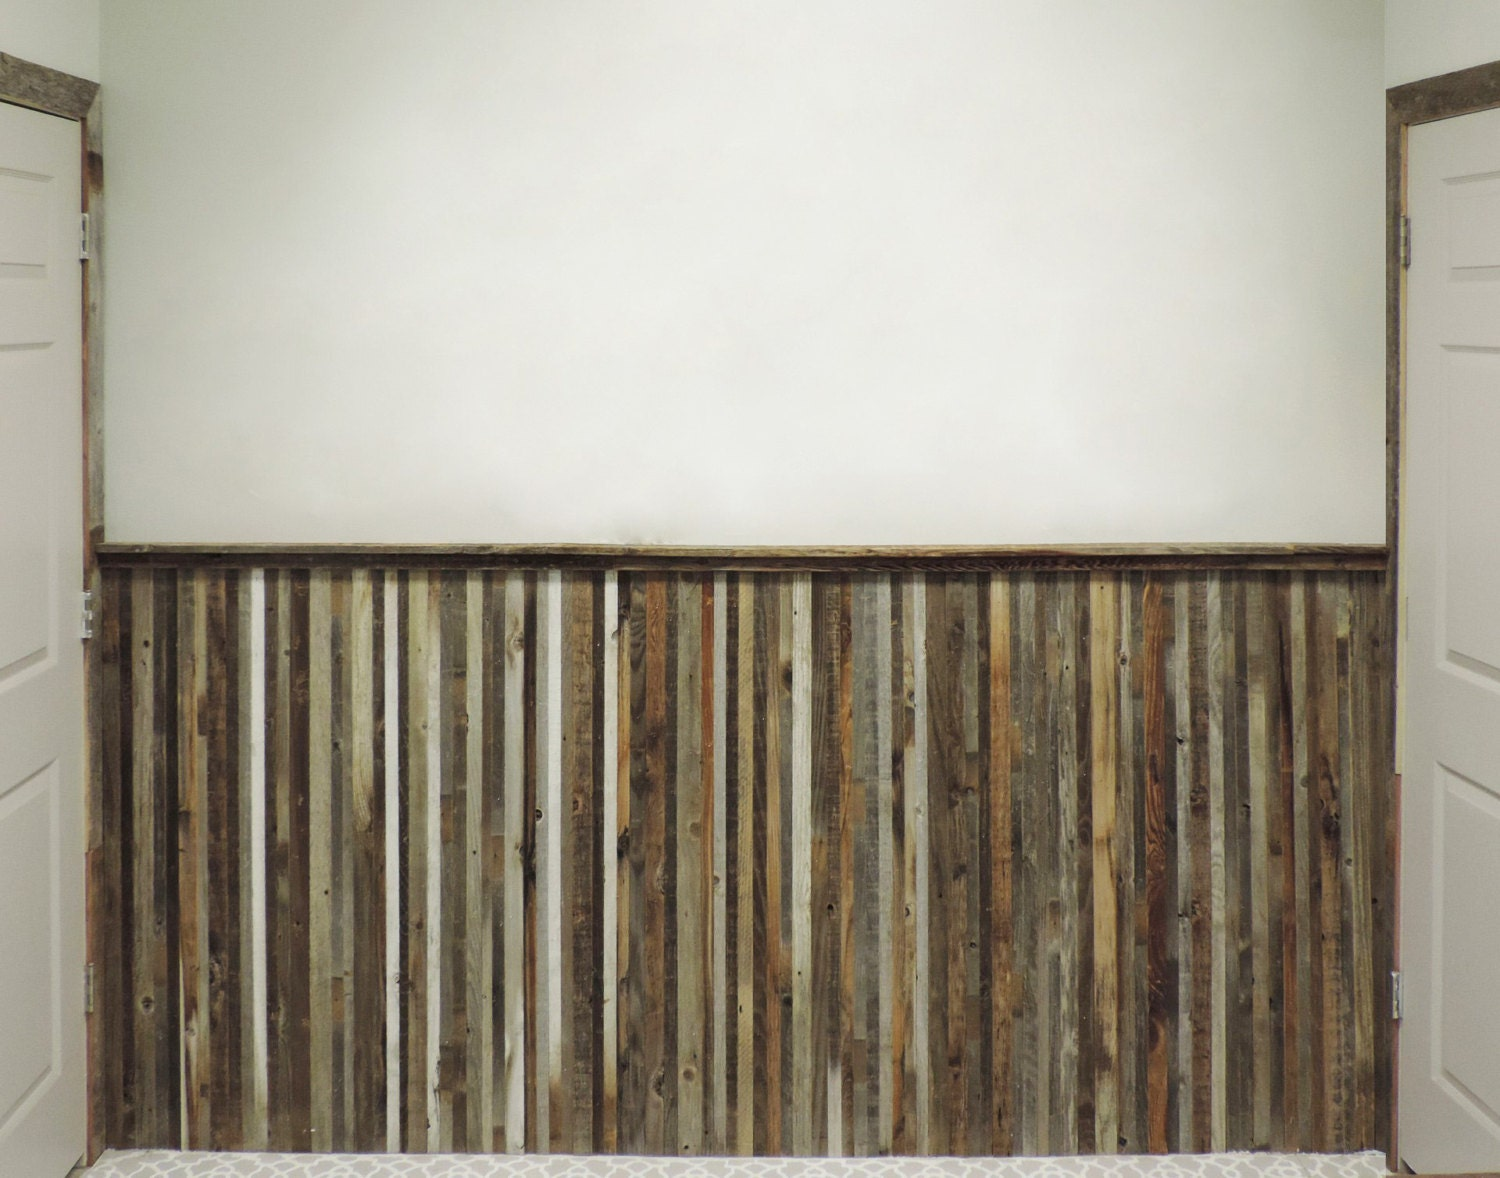 Faux Wood Wall Panels Canada Rulon Inc Wood Ceilings Acoustical Wall Systems And Suspended Upvc